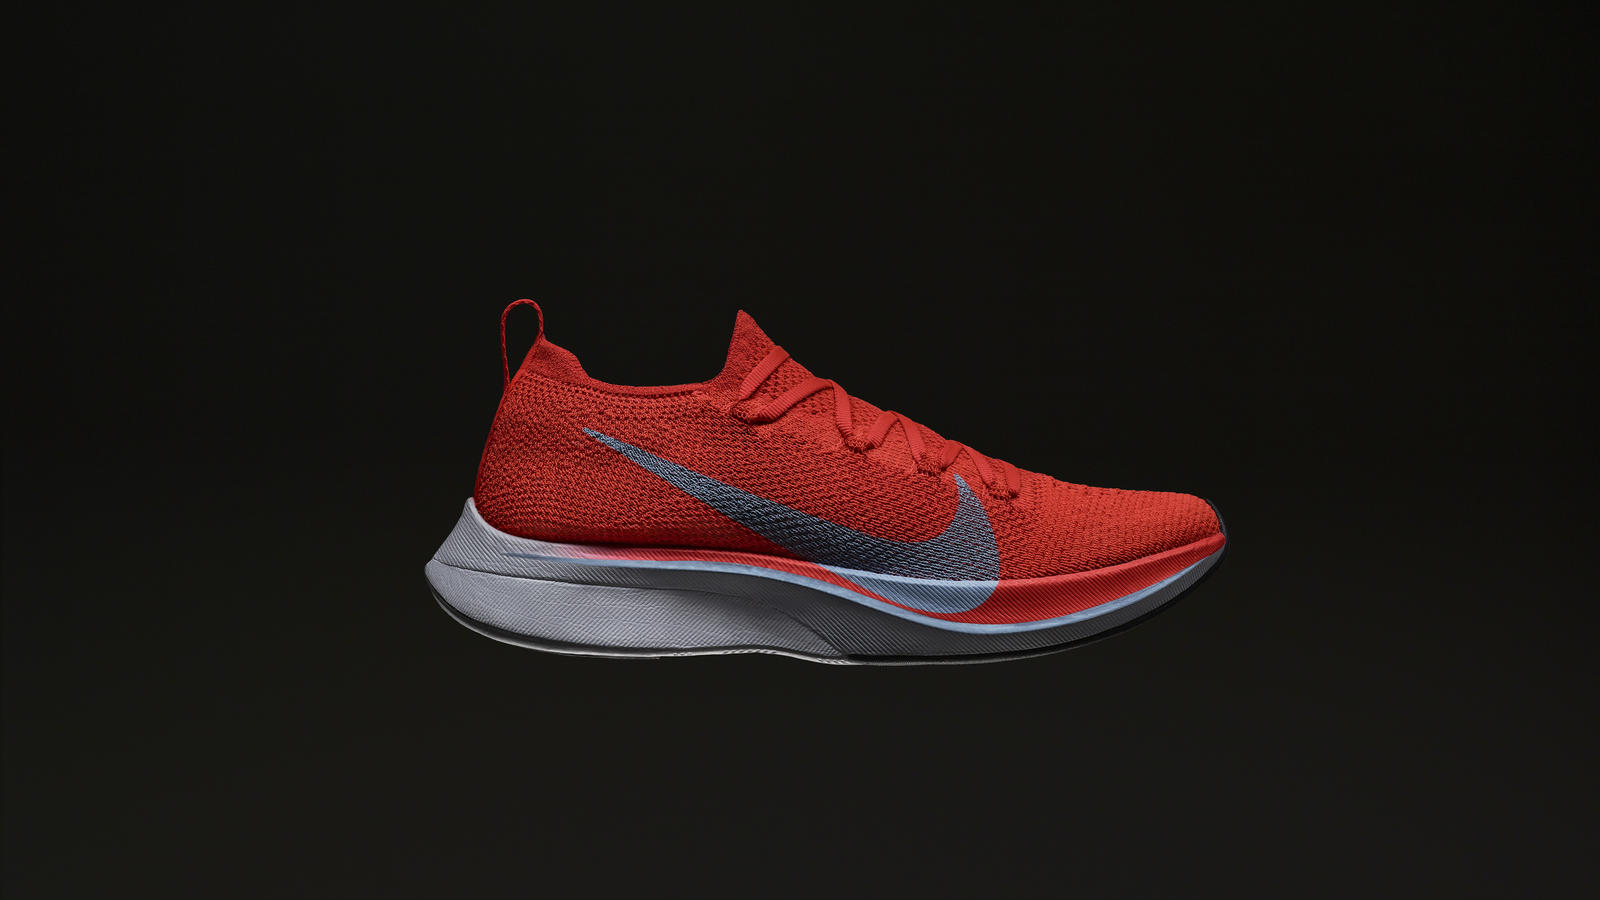 809565363d360 How to Get the Nike Zoom Vaporfly 4% - Nike News